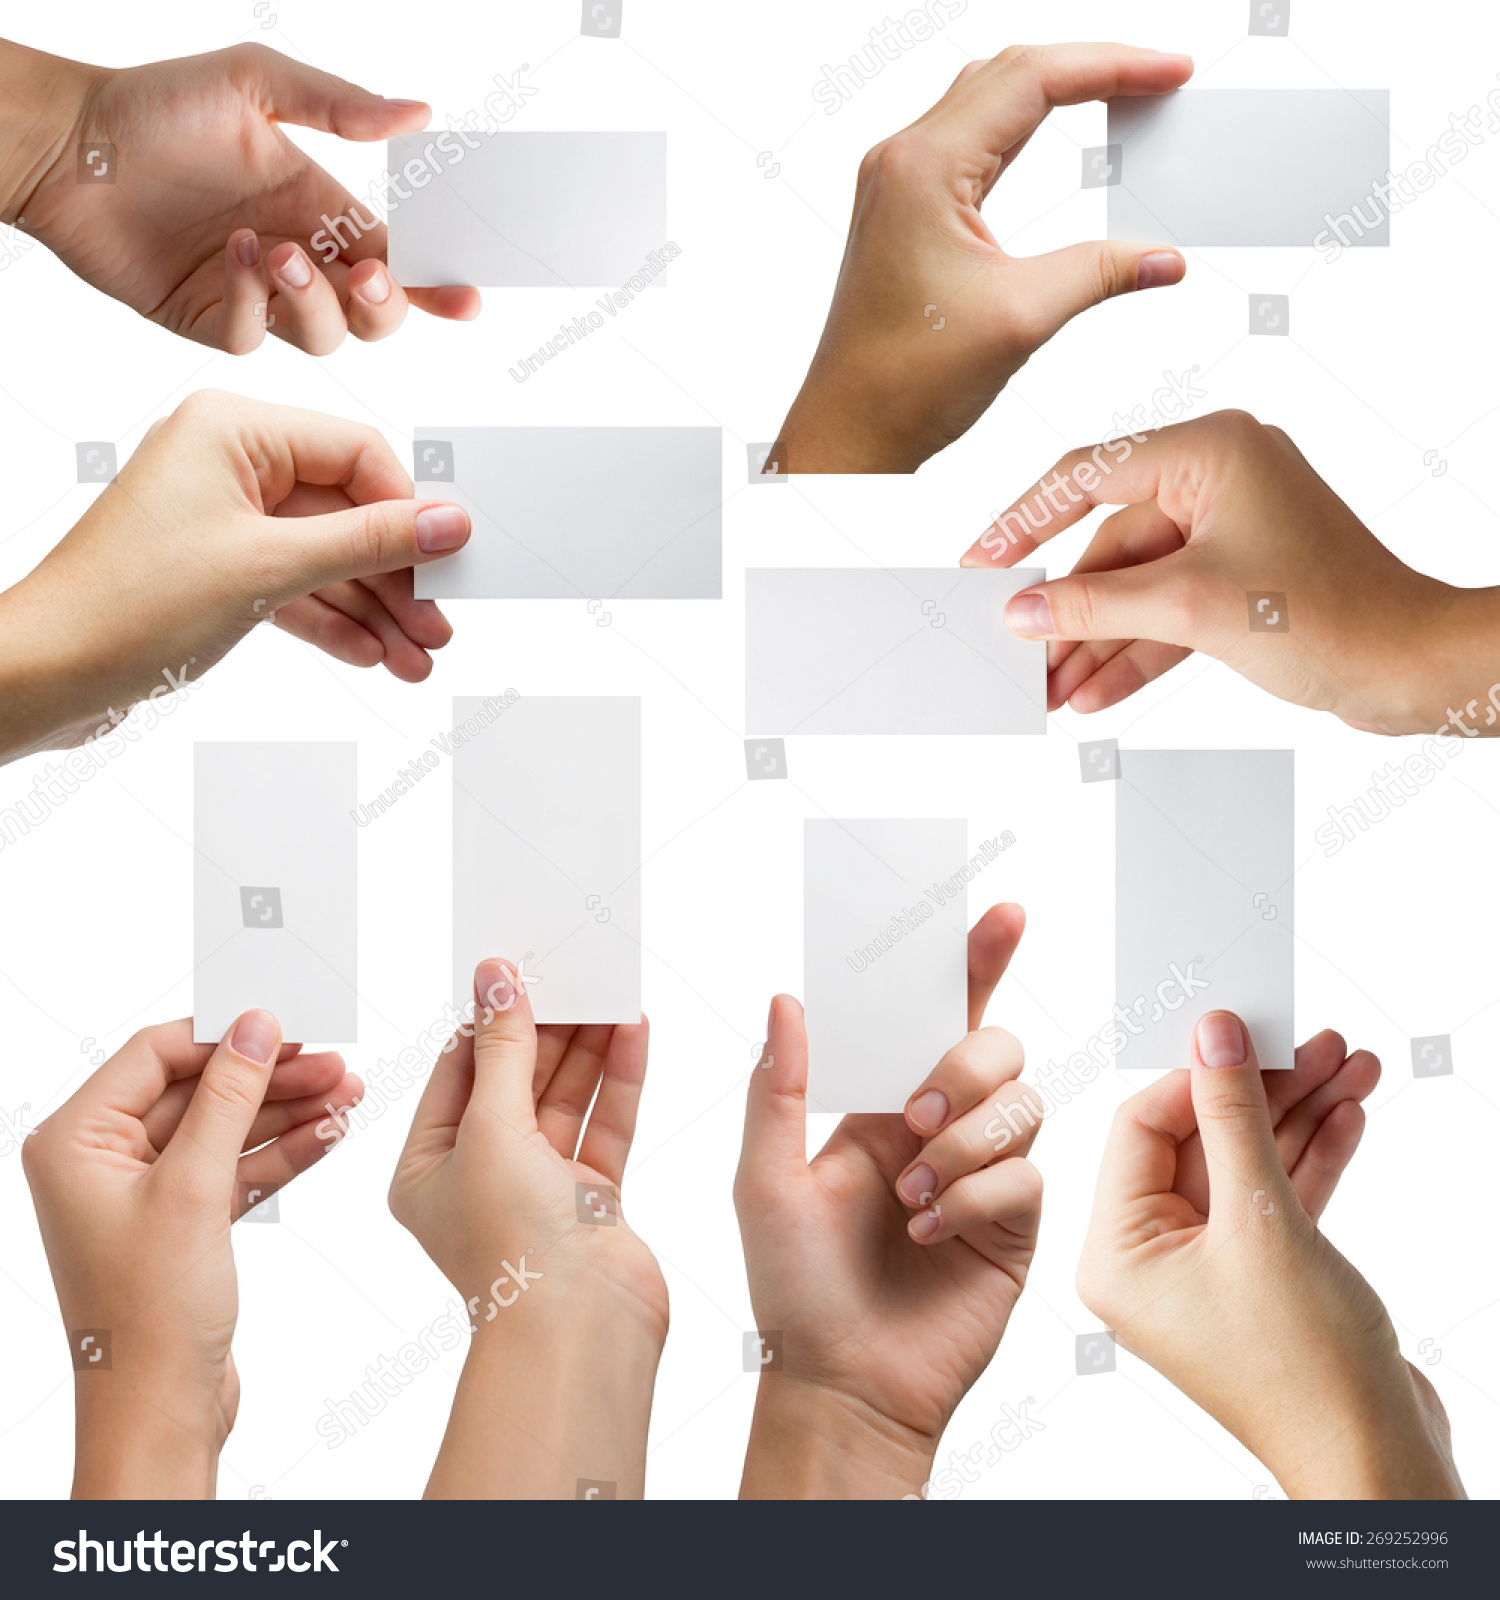 Hands Holding White Business Card Gift Stock Photo 269252996 ...